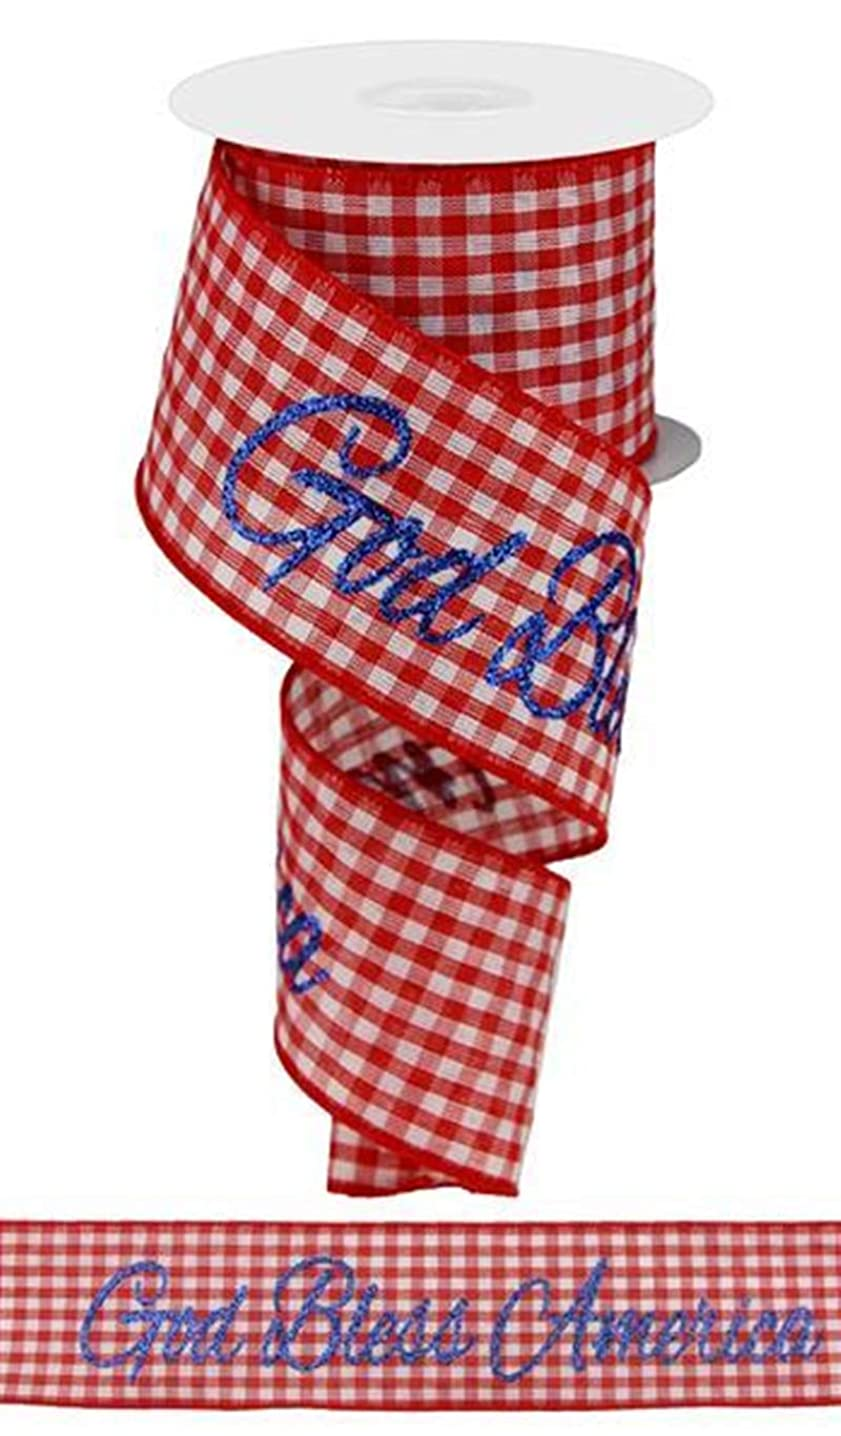 Patriotic Ribbon - God Bless America Red Gingham Check - Wired Edge 2.5